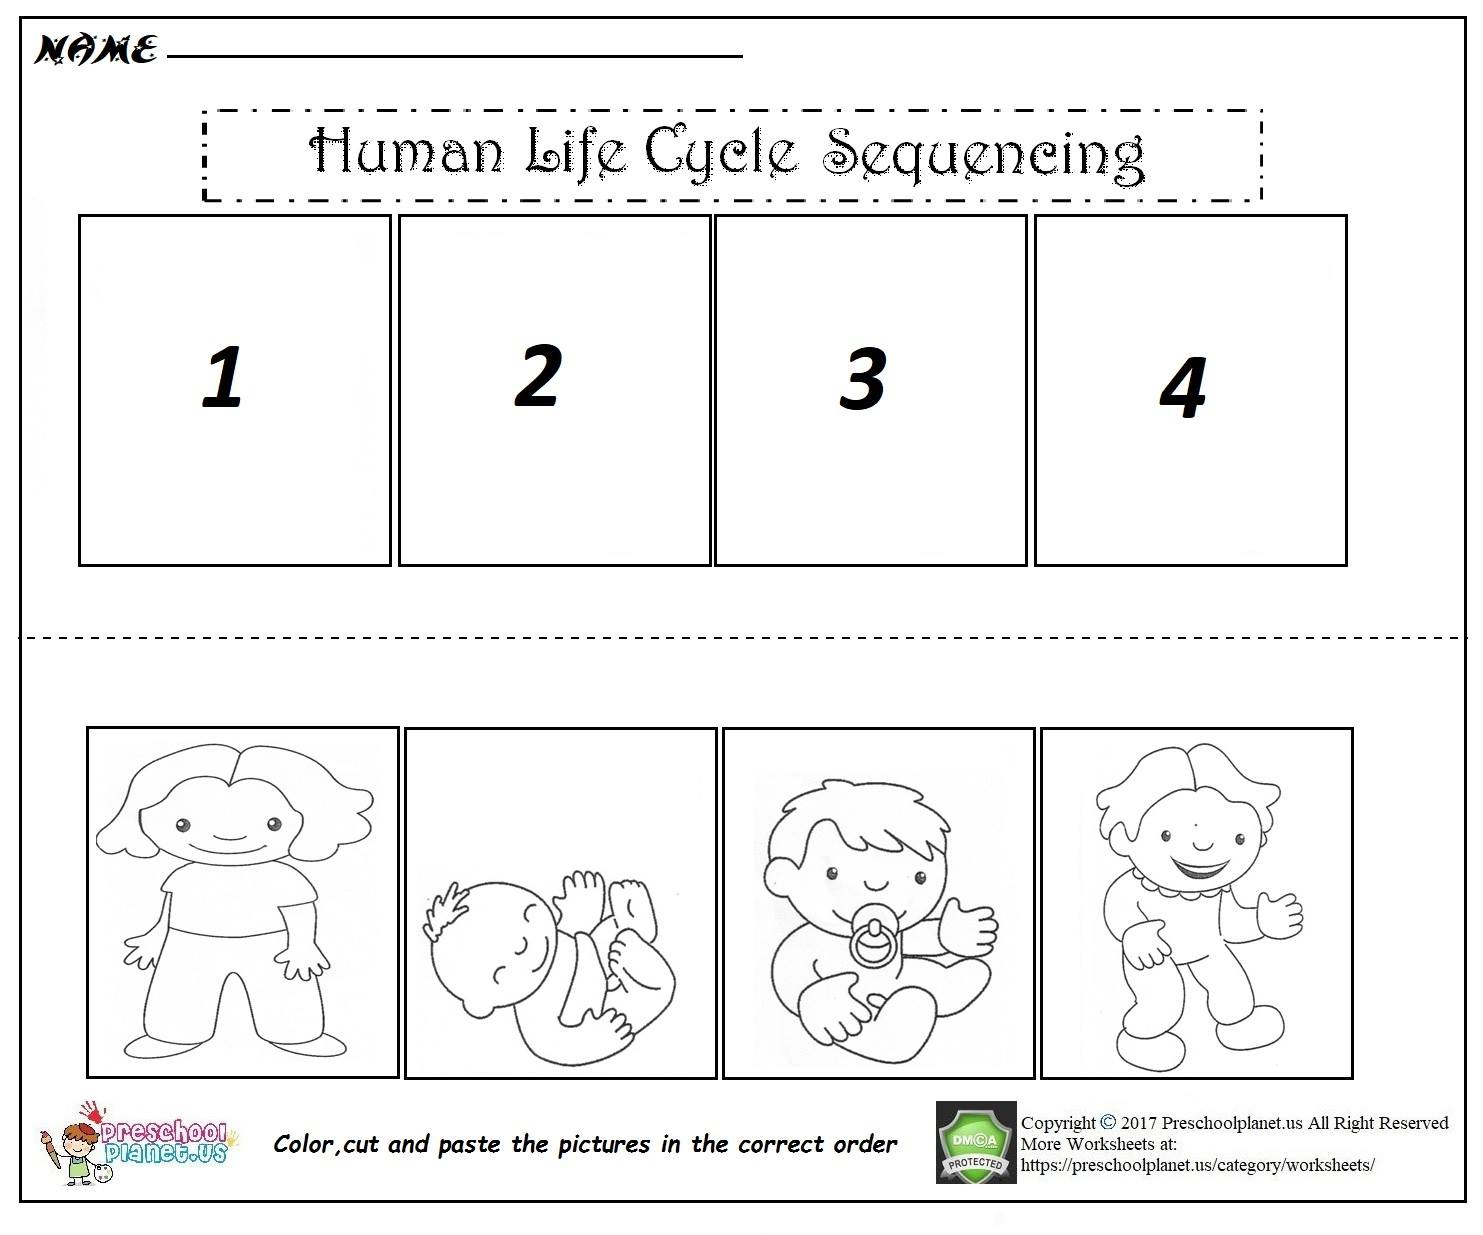 Human Life Cycle Sequencing Worksheet